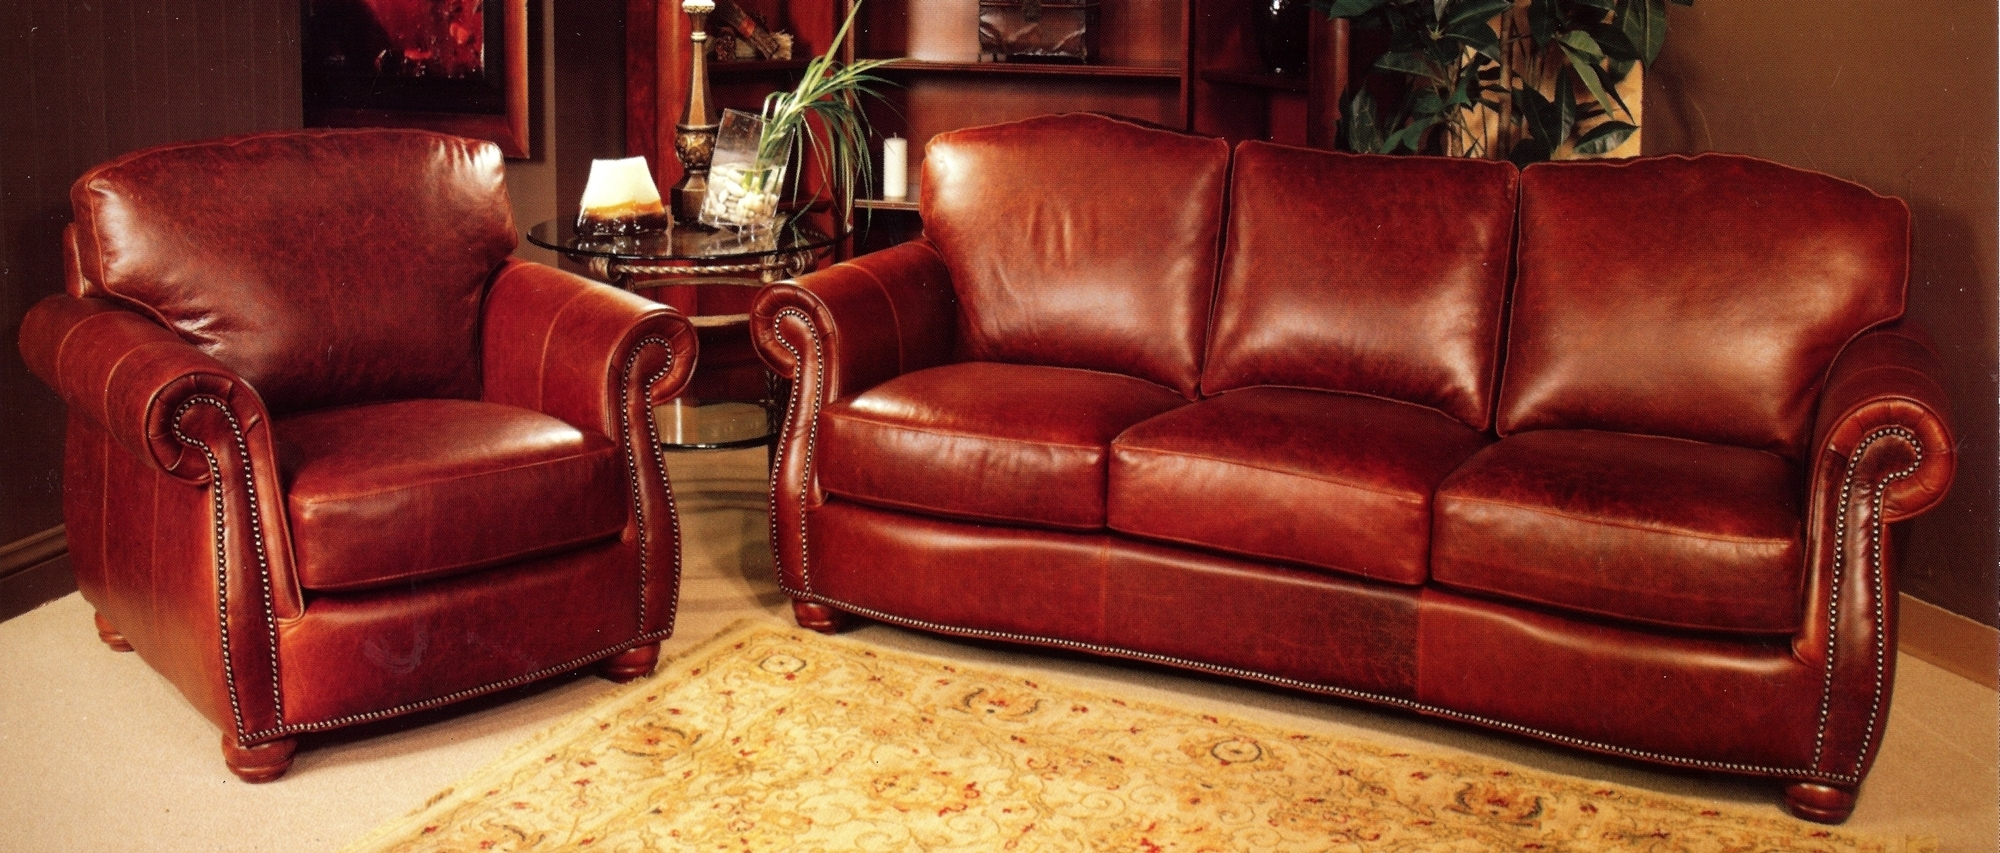 Red Leather Sofas Within Best And Newest Rustic Red Leather Sofa And Rustic Red Leather Chair With Rustic (View 15 of 15)